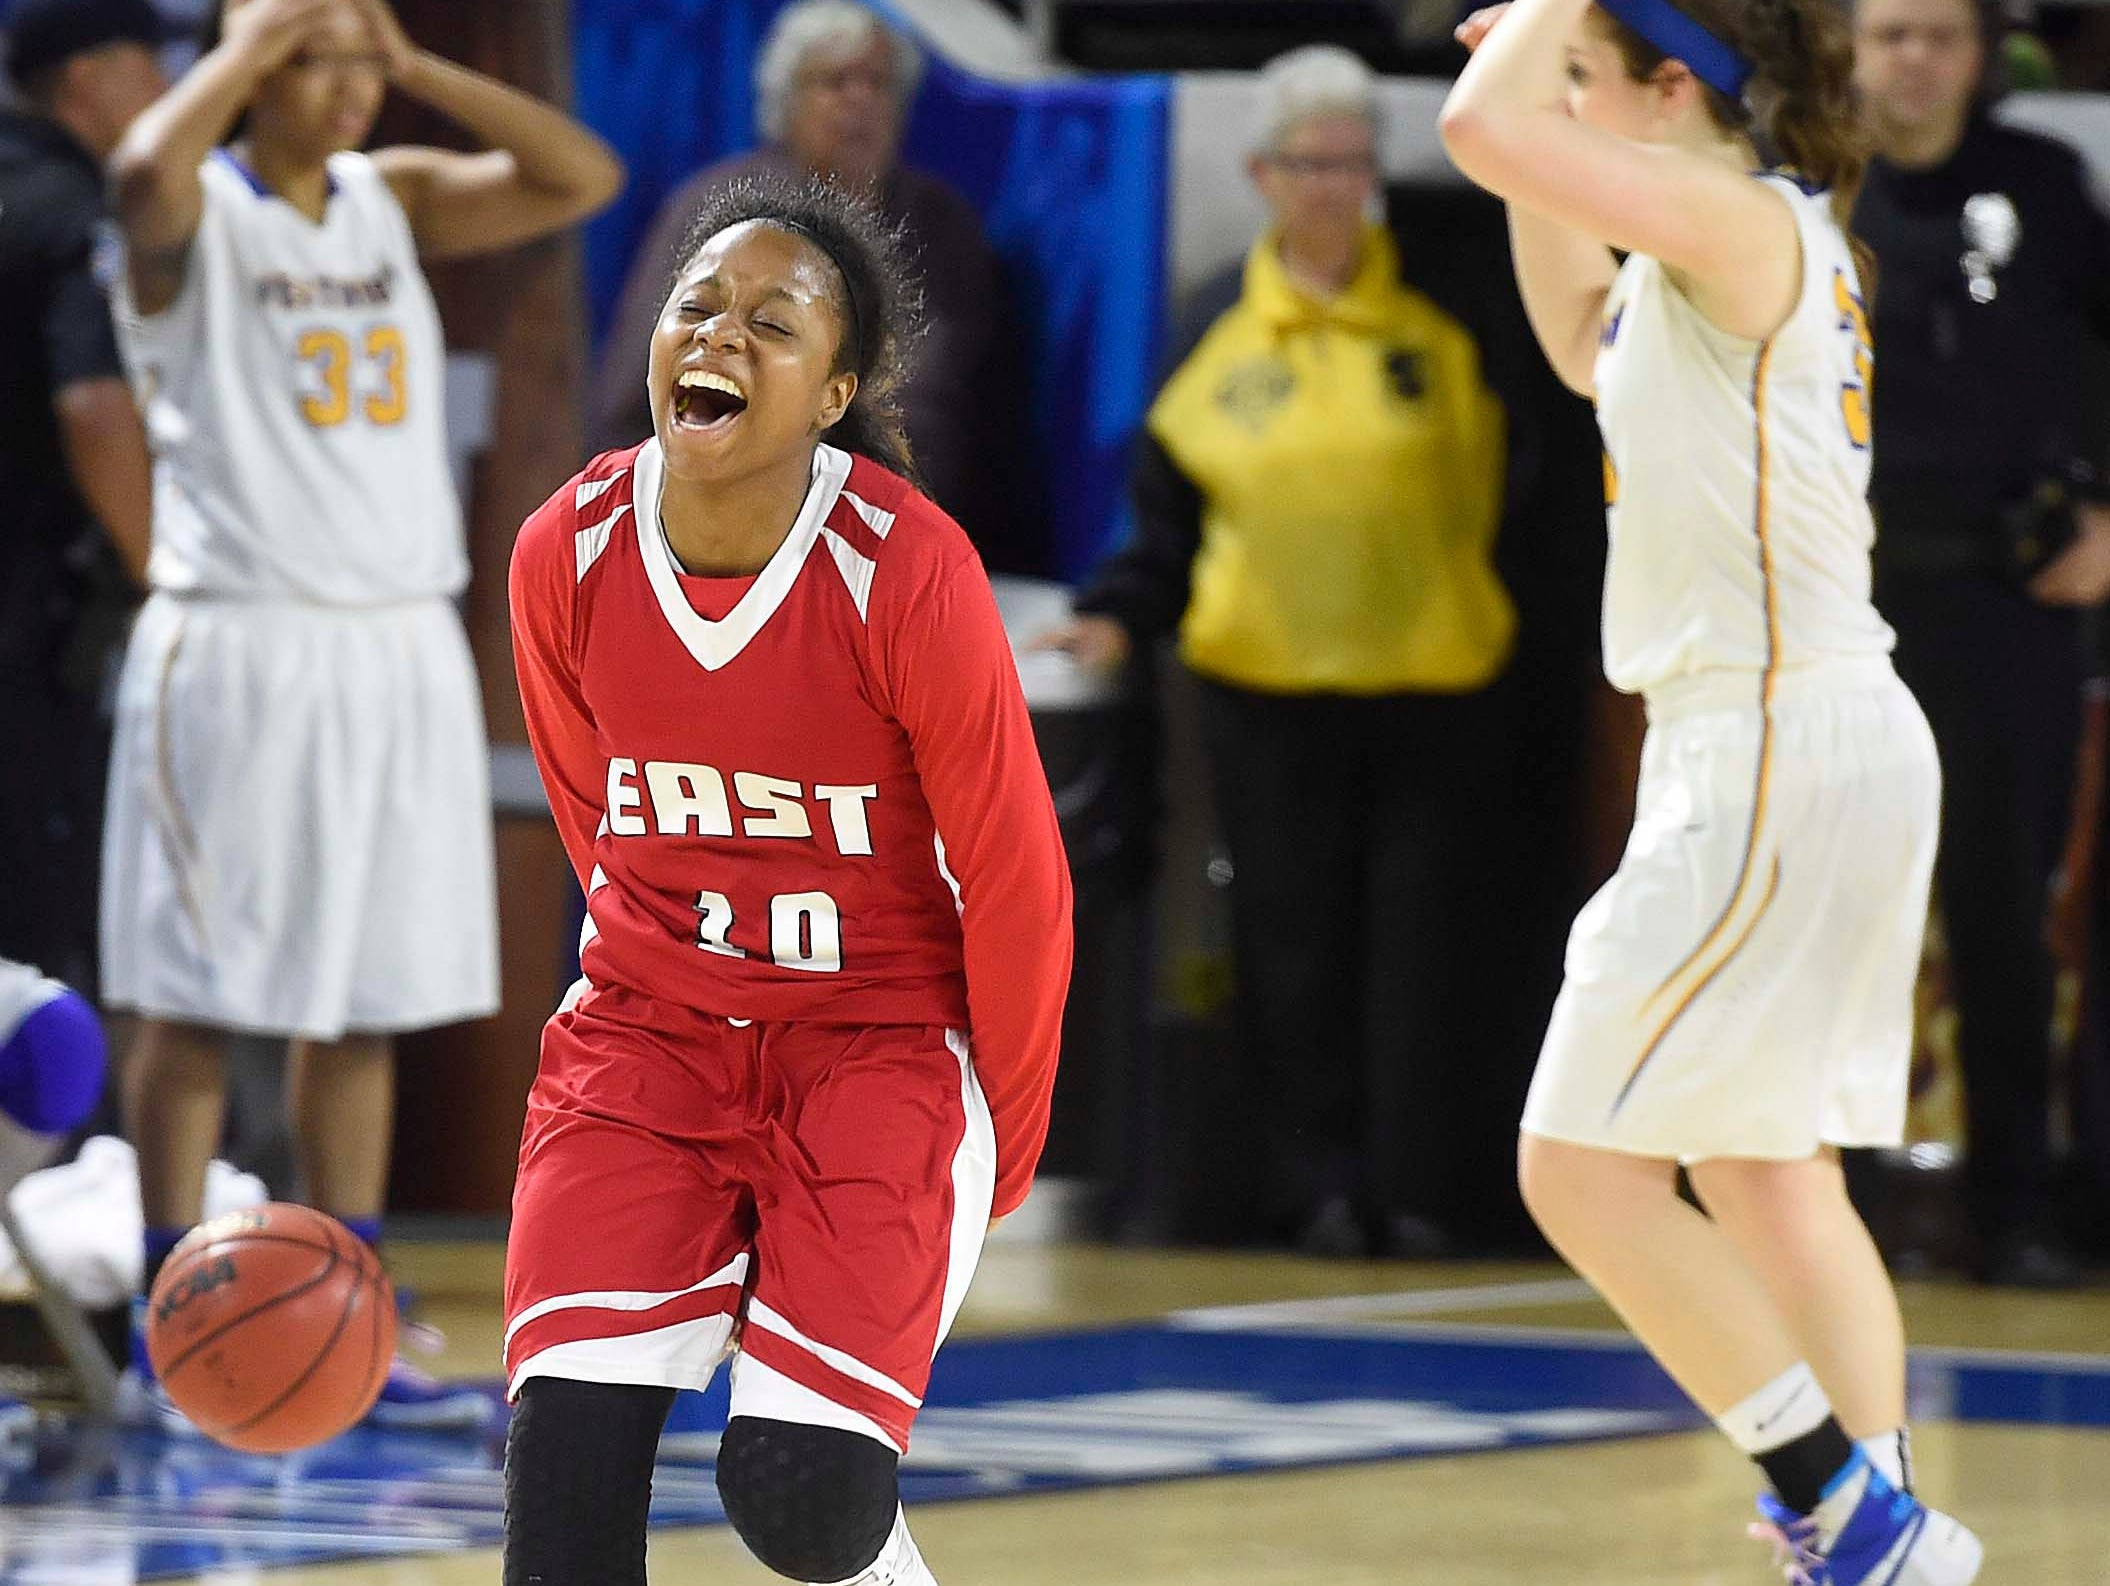 East's Le'Jzae Davidson (10) celebrates as East makes a huge run at the end to win over Westview High School 35-32 in the Division I Class AA Girl's basketball semi-finals at the Murphy Center on MTSU's campus March 11, 2016 in Murfreesboro, Tenn.